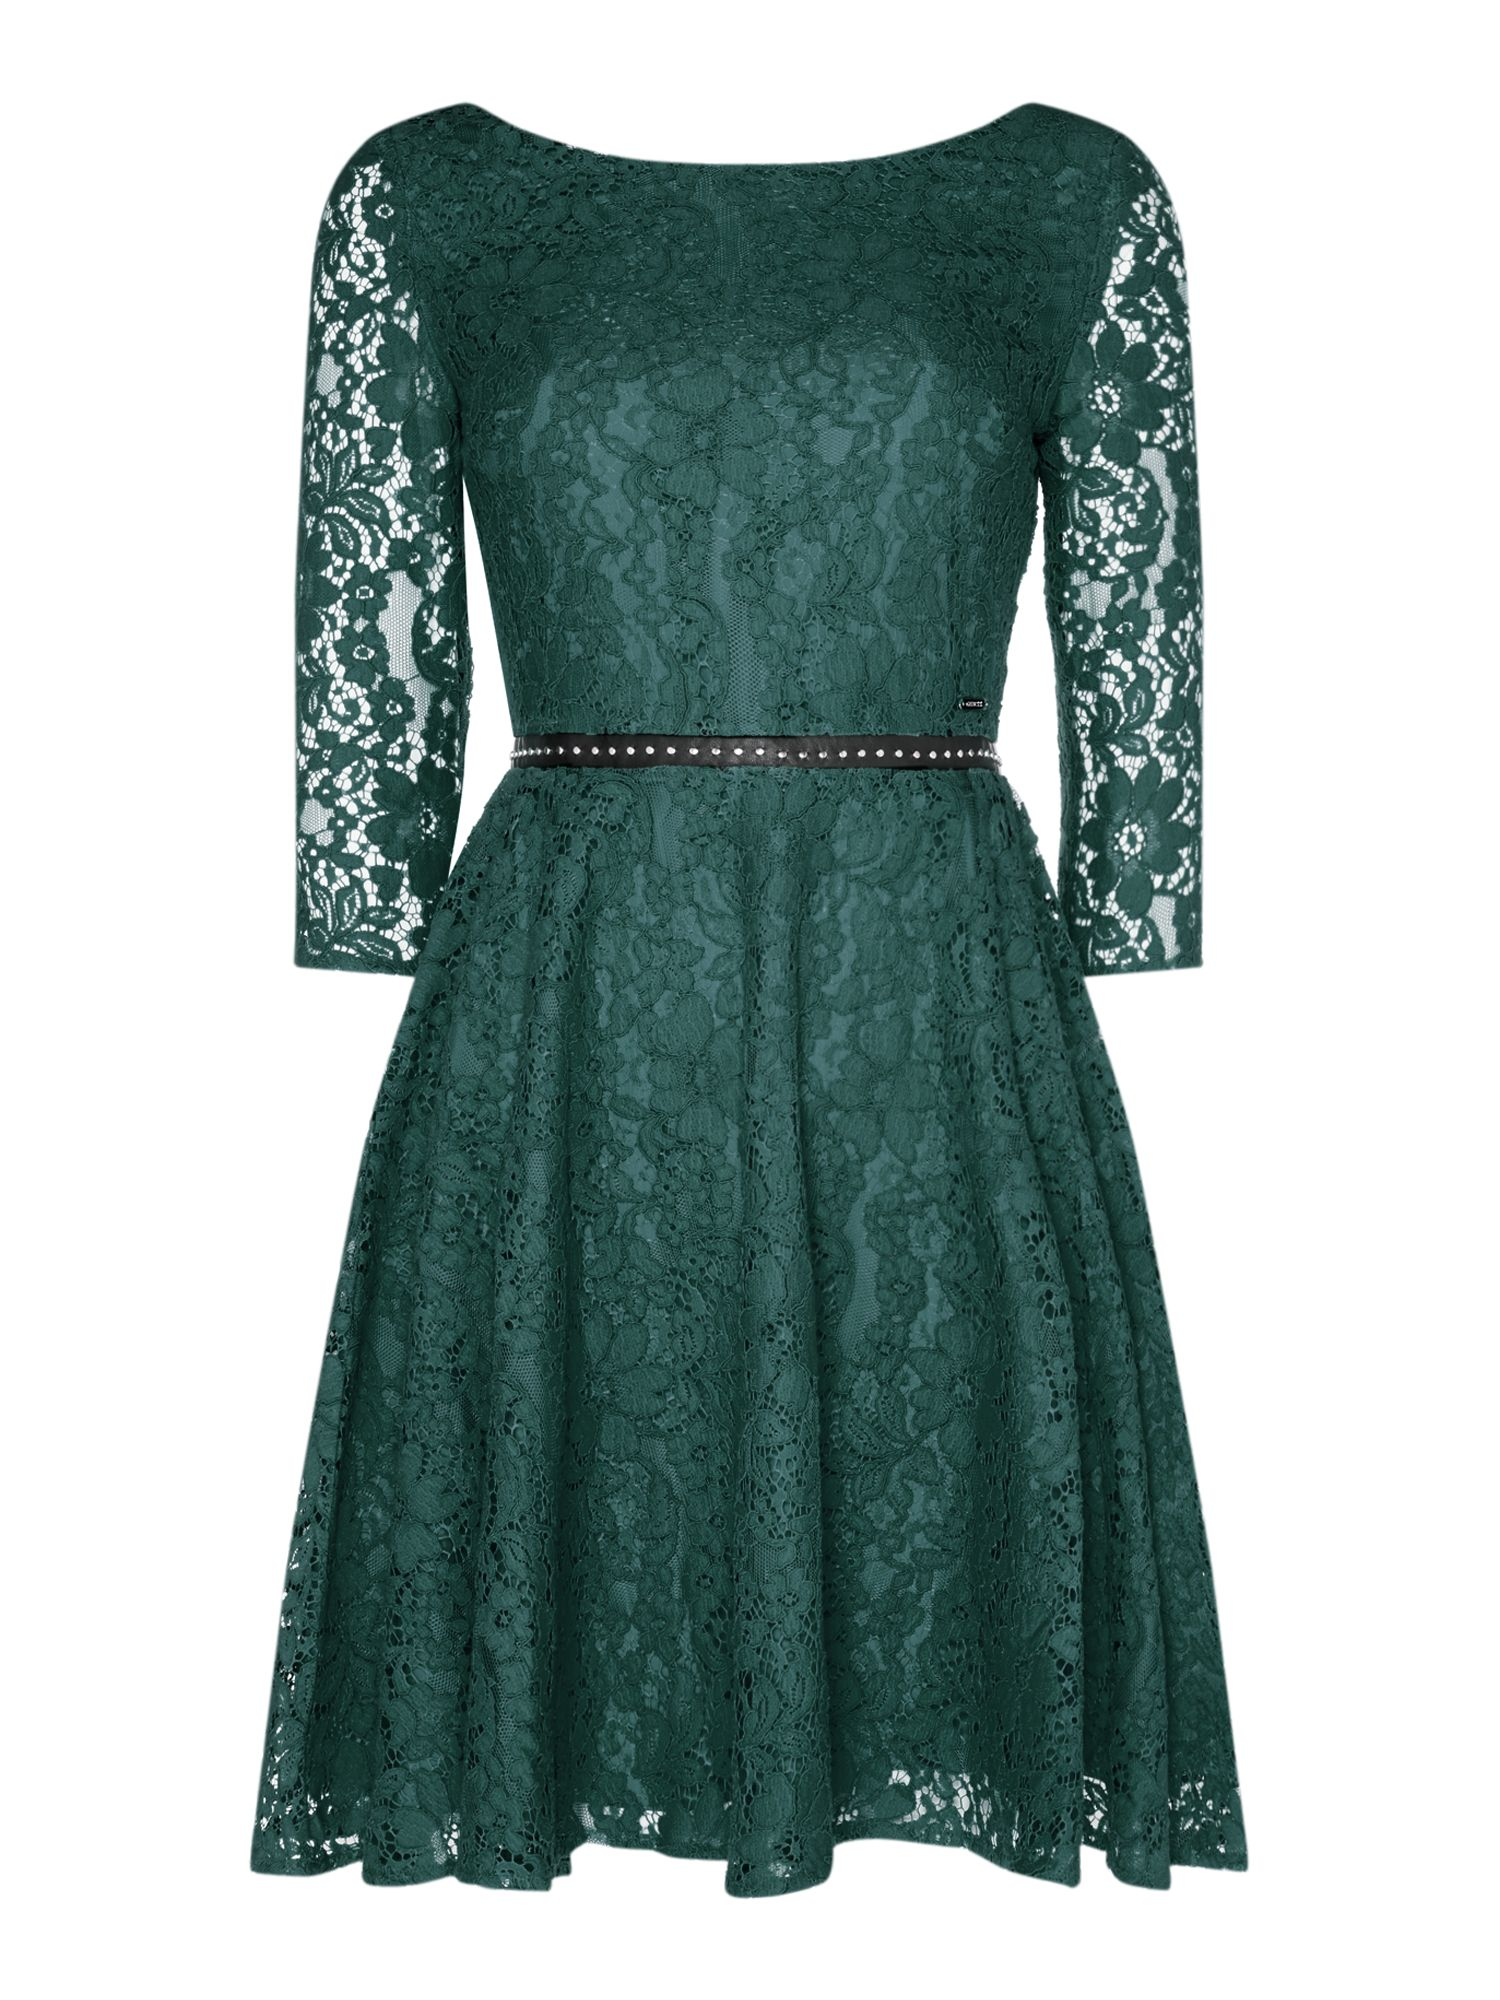 Guess Long Sleeve Lace Fit & Flare Dress, Green